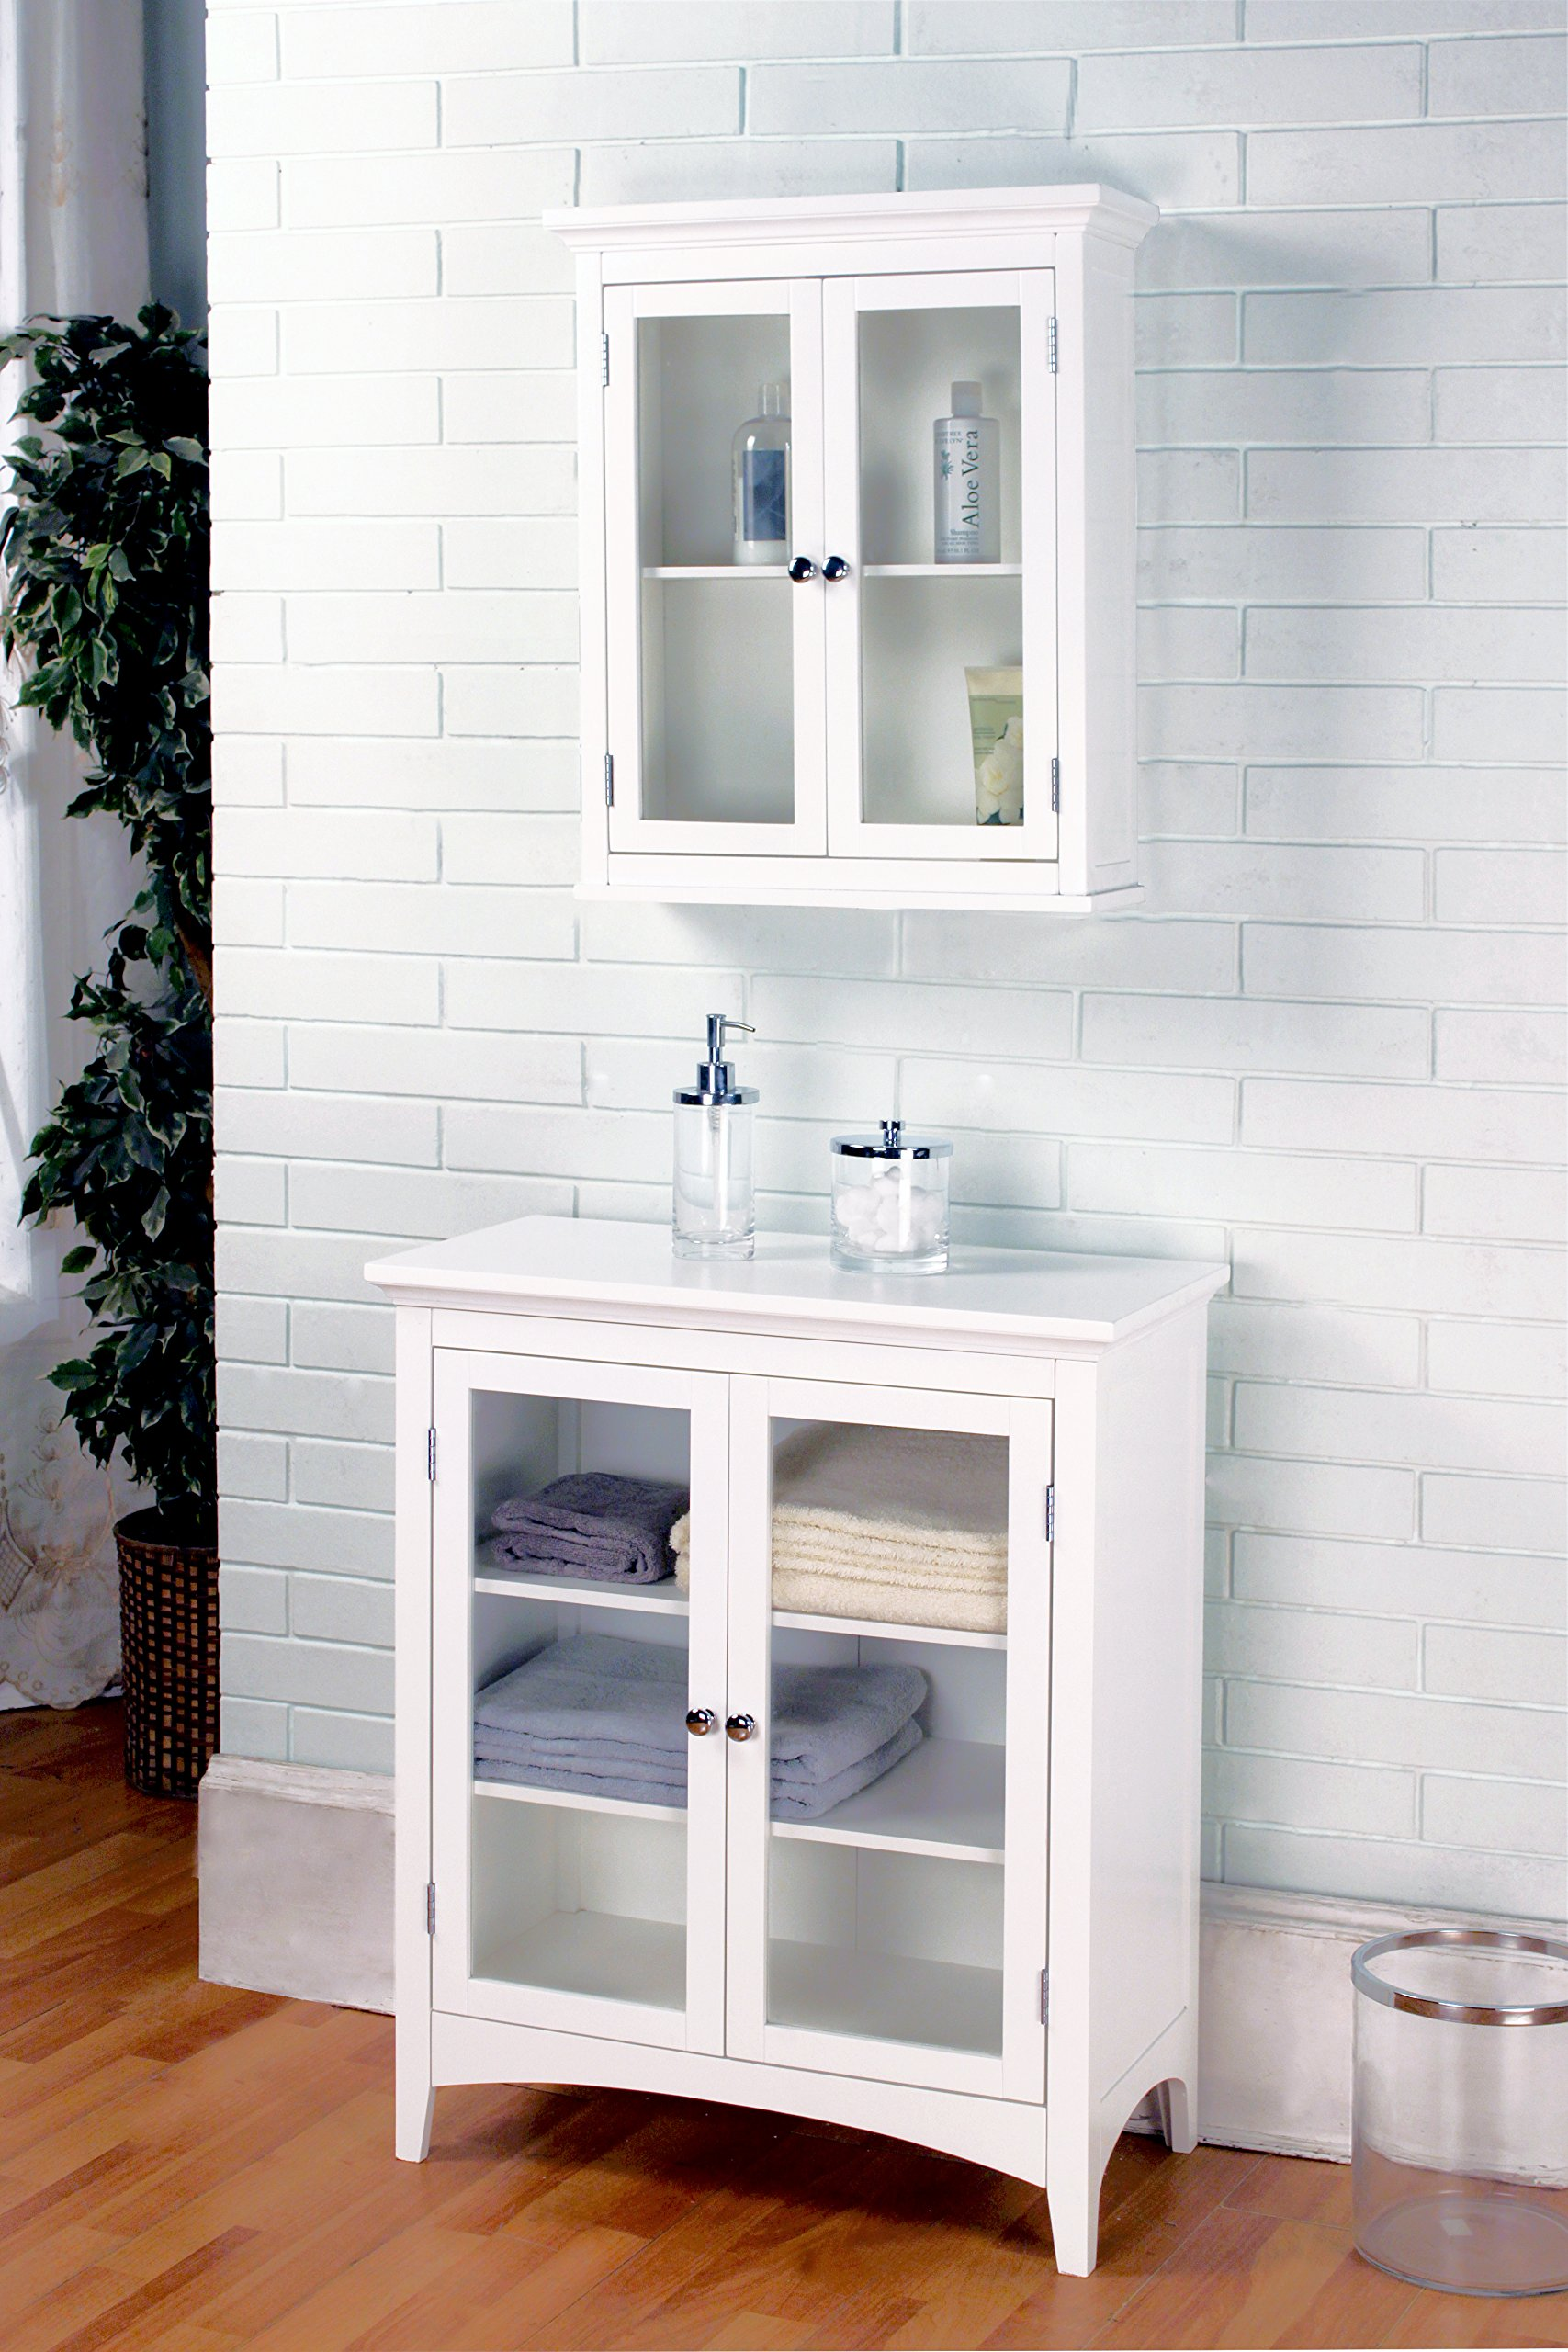 Elegant Home Fashions Madison Collection Shelved Double-Door Floor Cabinet, White by Elegant Home Fashions (Image #2)